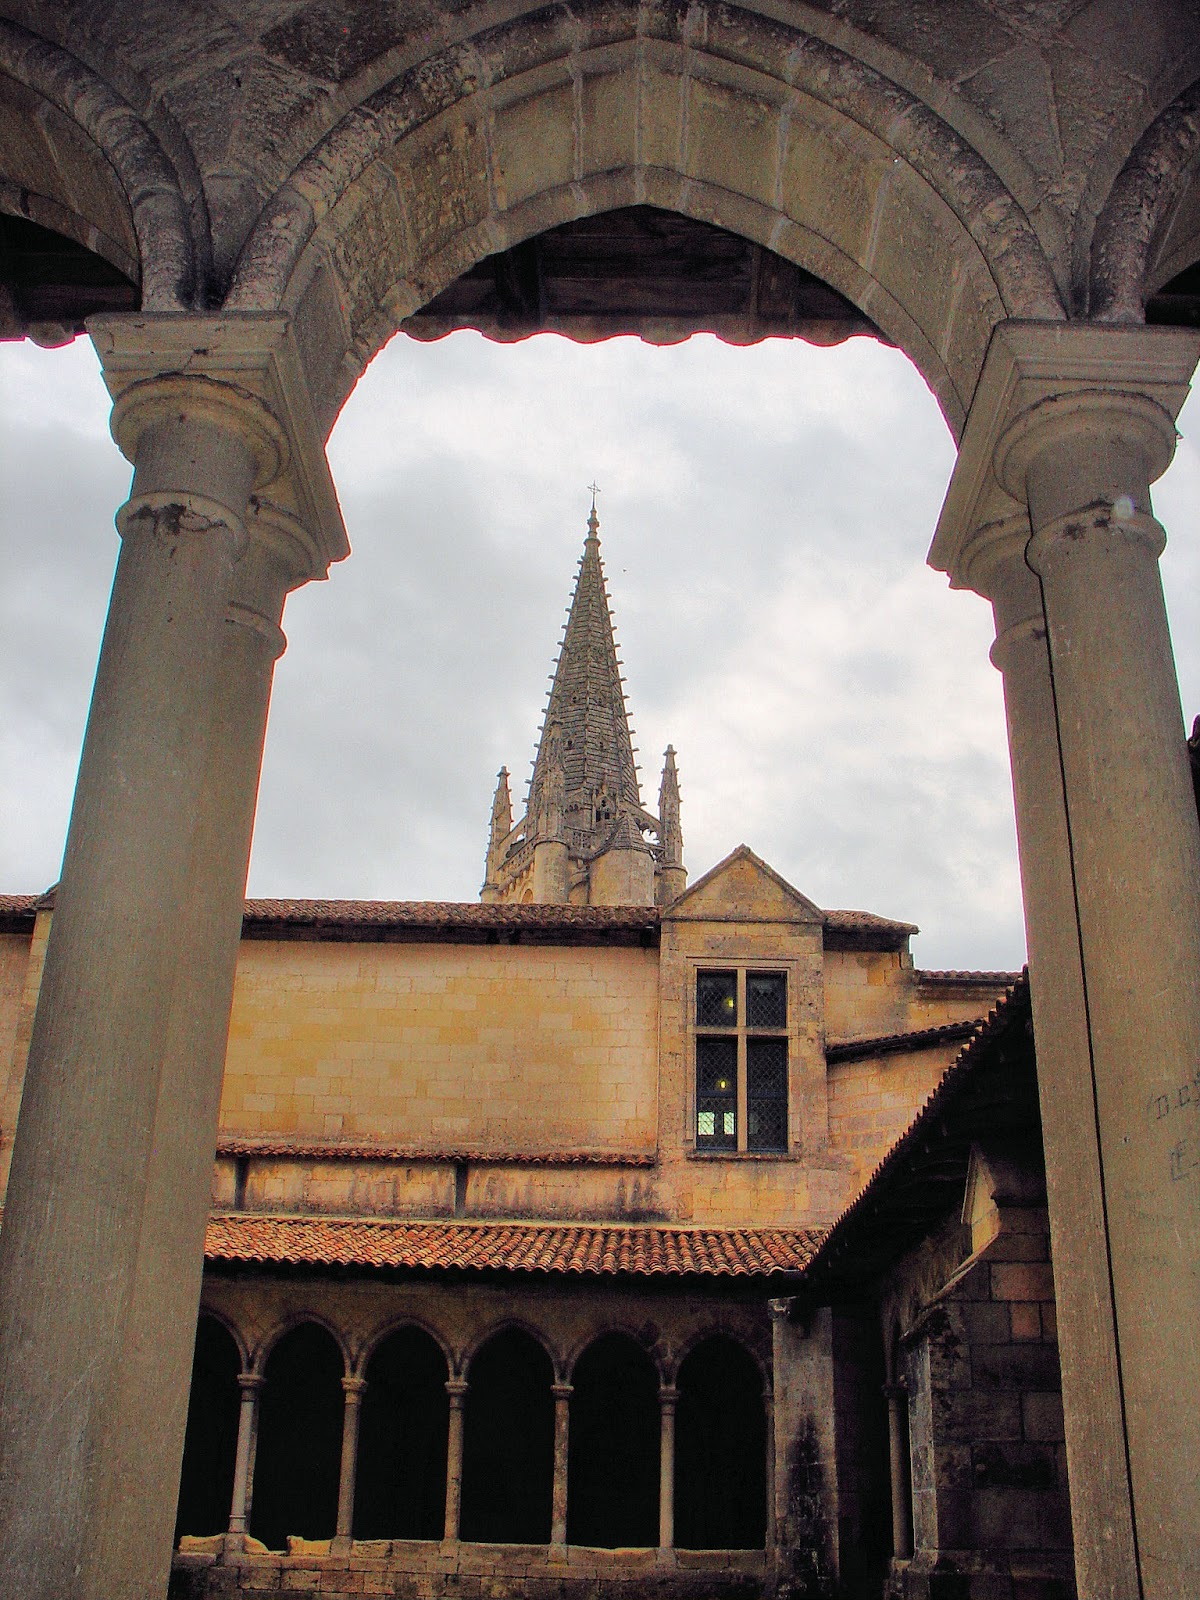 The Monolithic Church tower as seen from the Collegiate Cloisters.